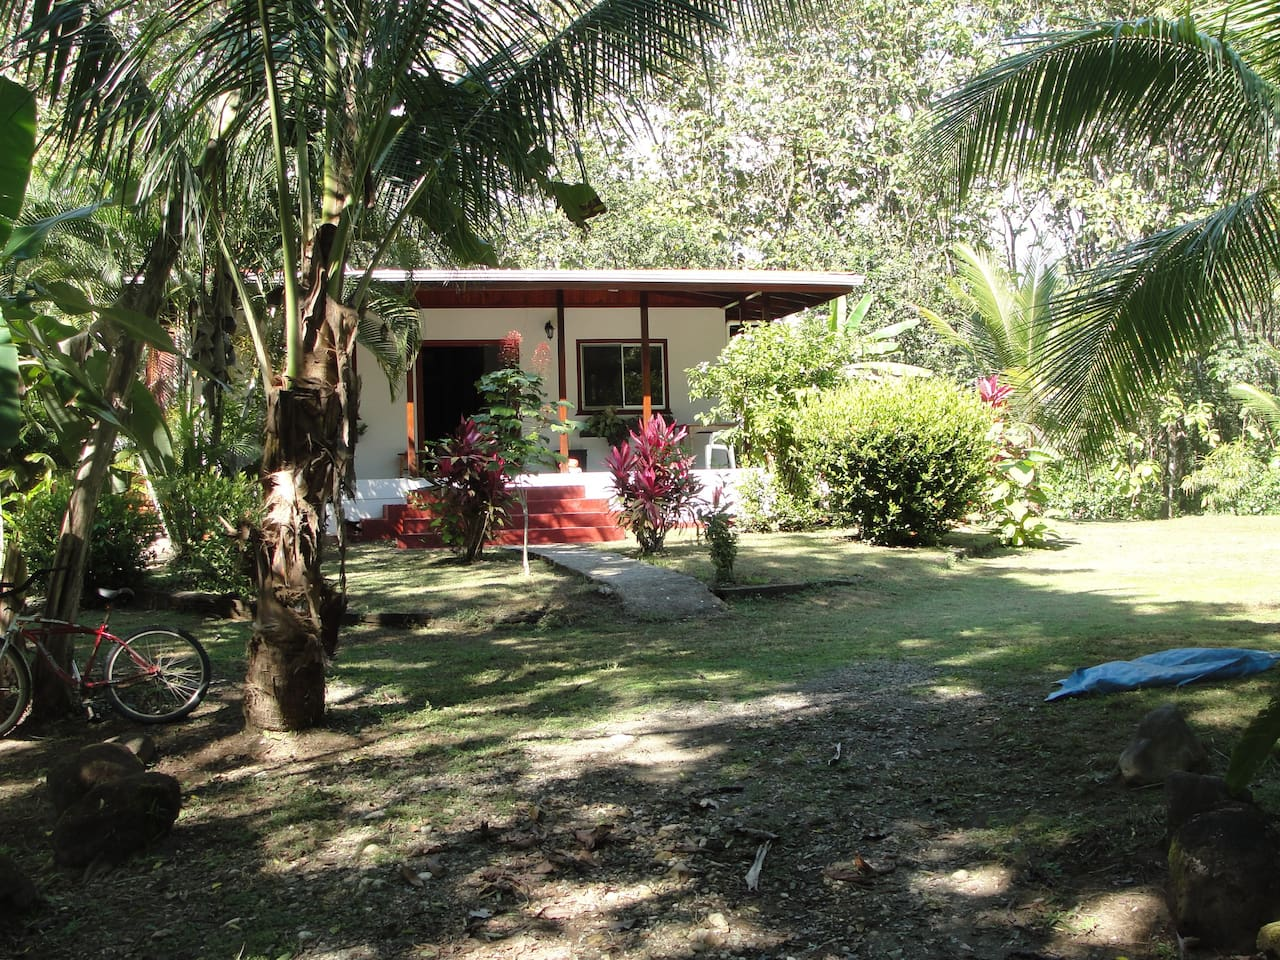 Jungle beach house in costa rica houses for rent in for Costa rica rental houses